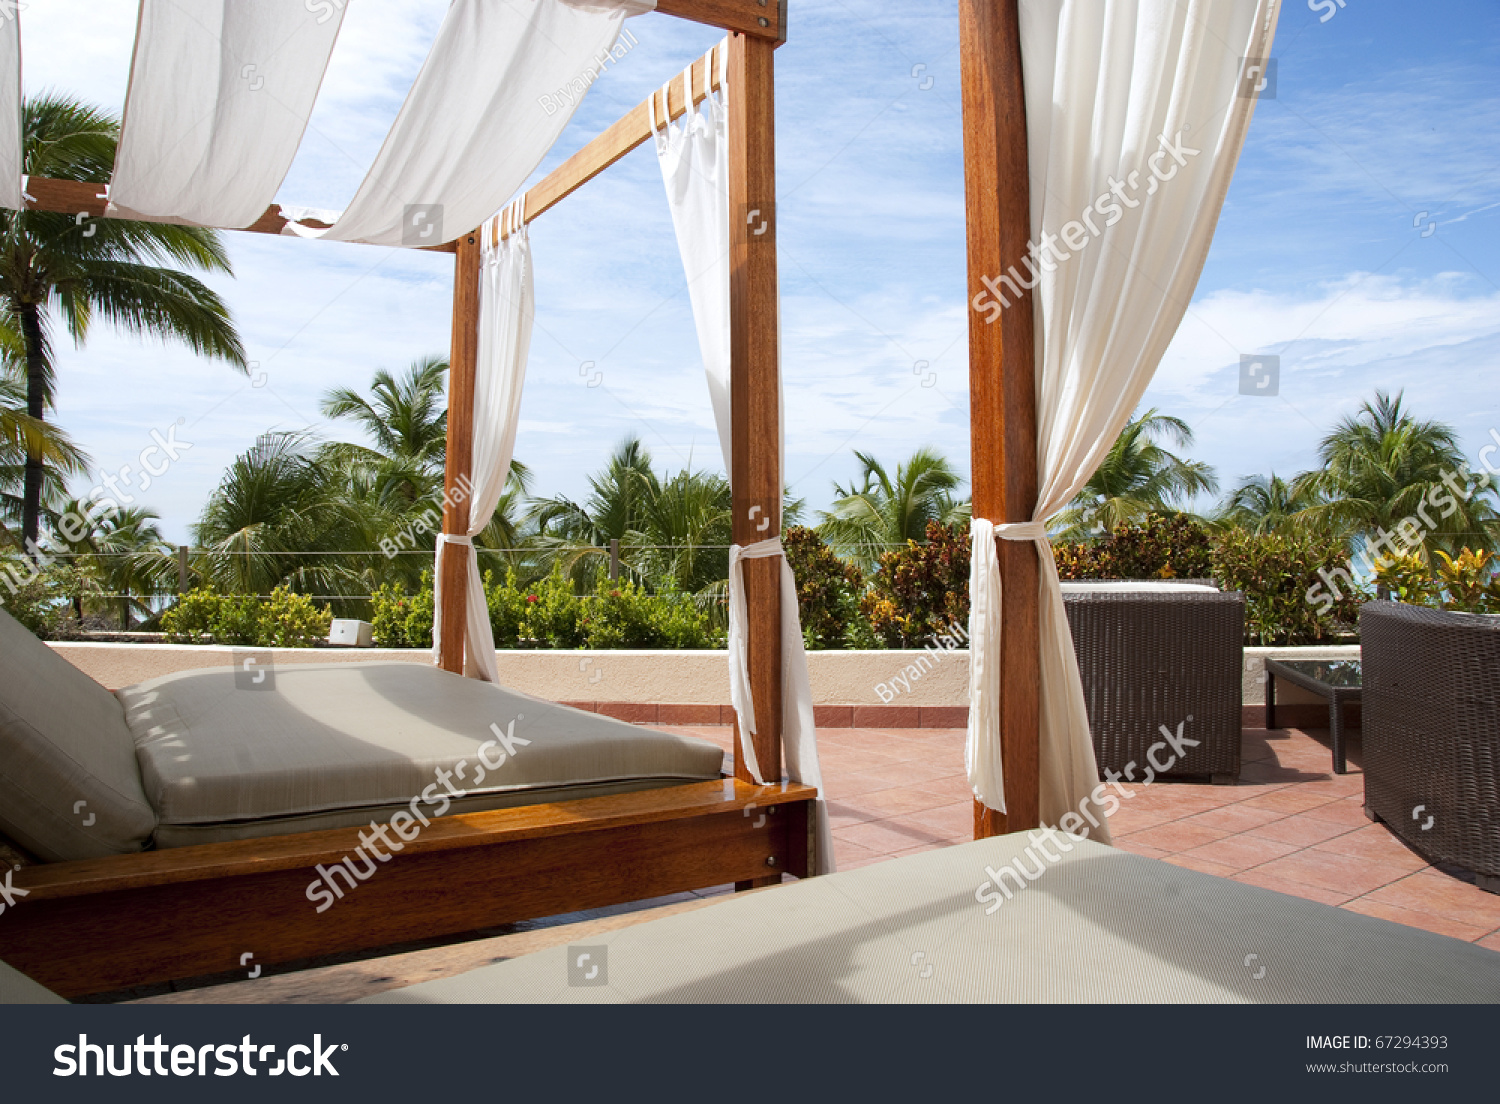 Outdoor Cabana outdoor cabana bed caribbean resort 1st stock photo 67294393